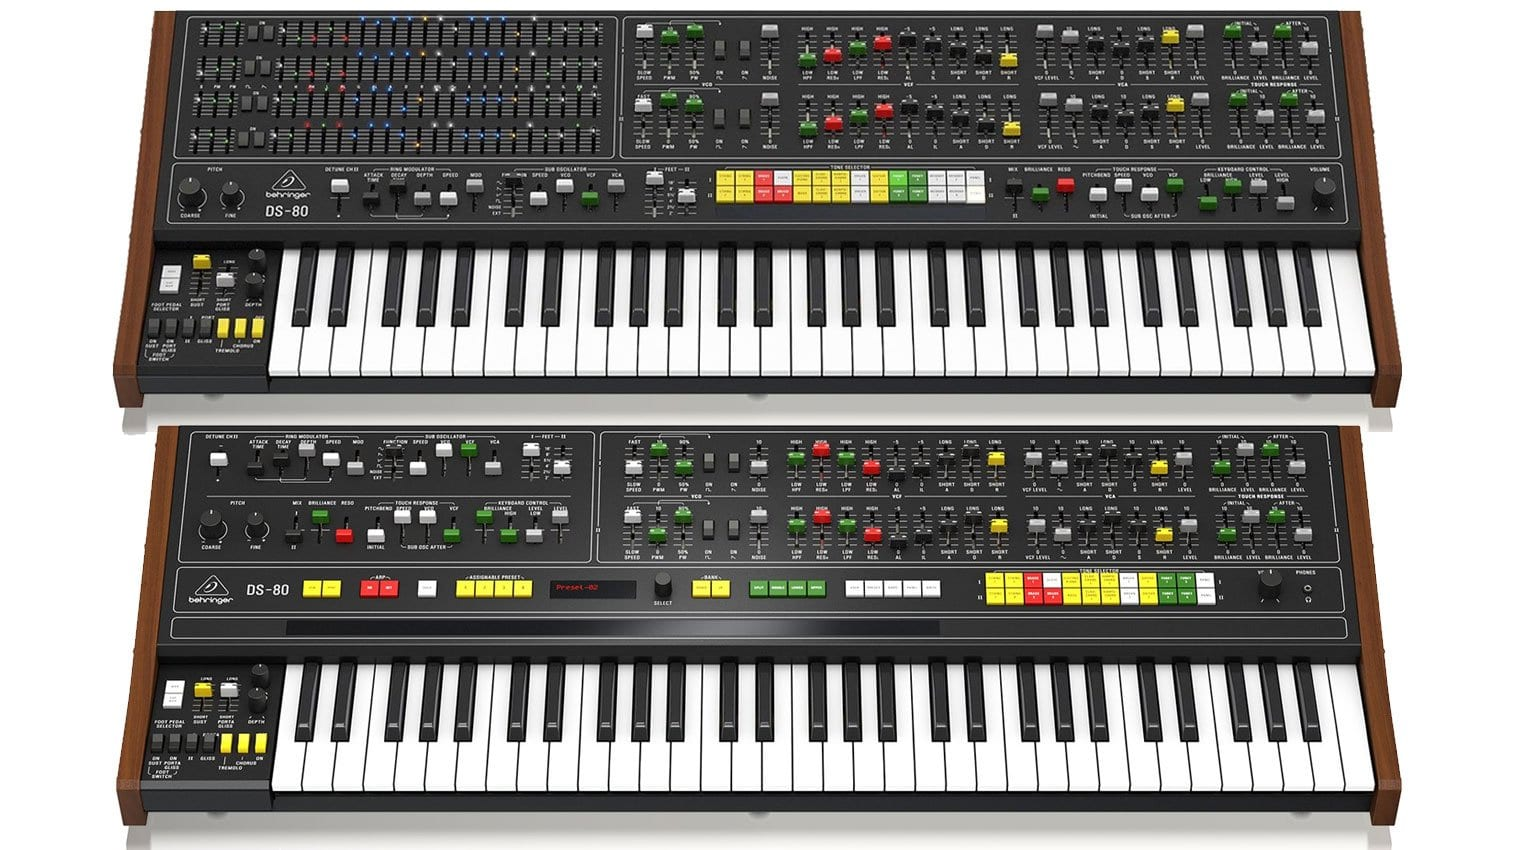 Behringer releases updated images of the developing DS-80 synthesizer